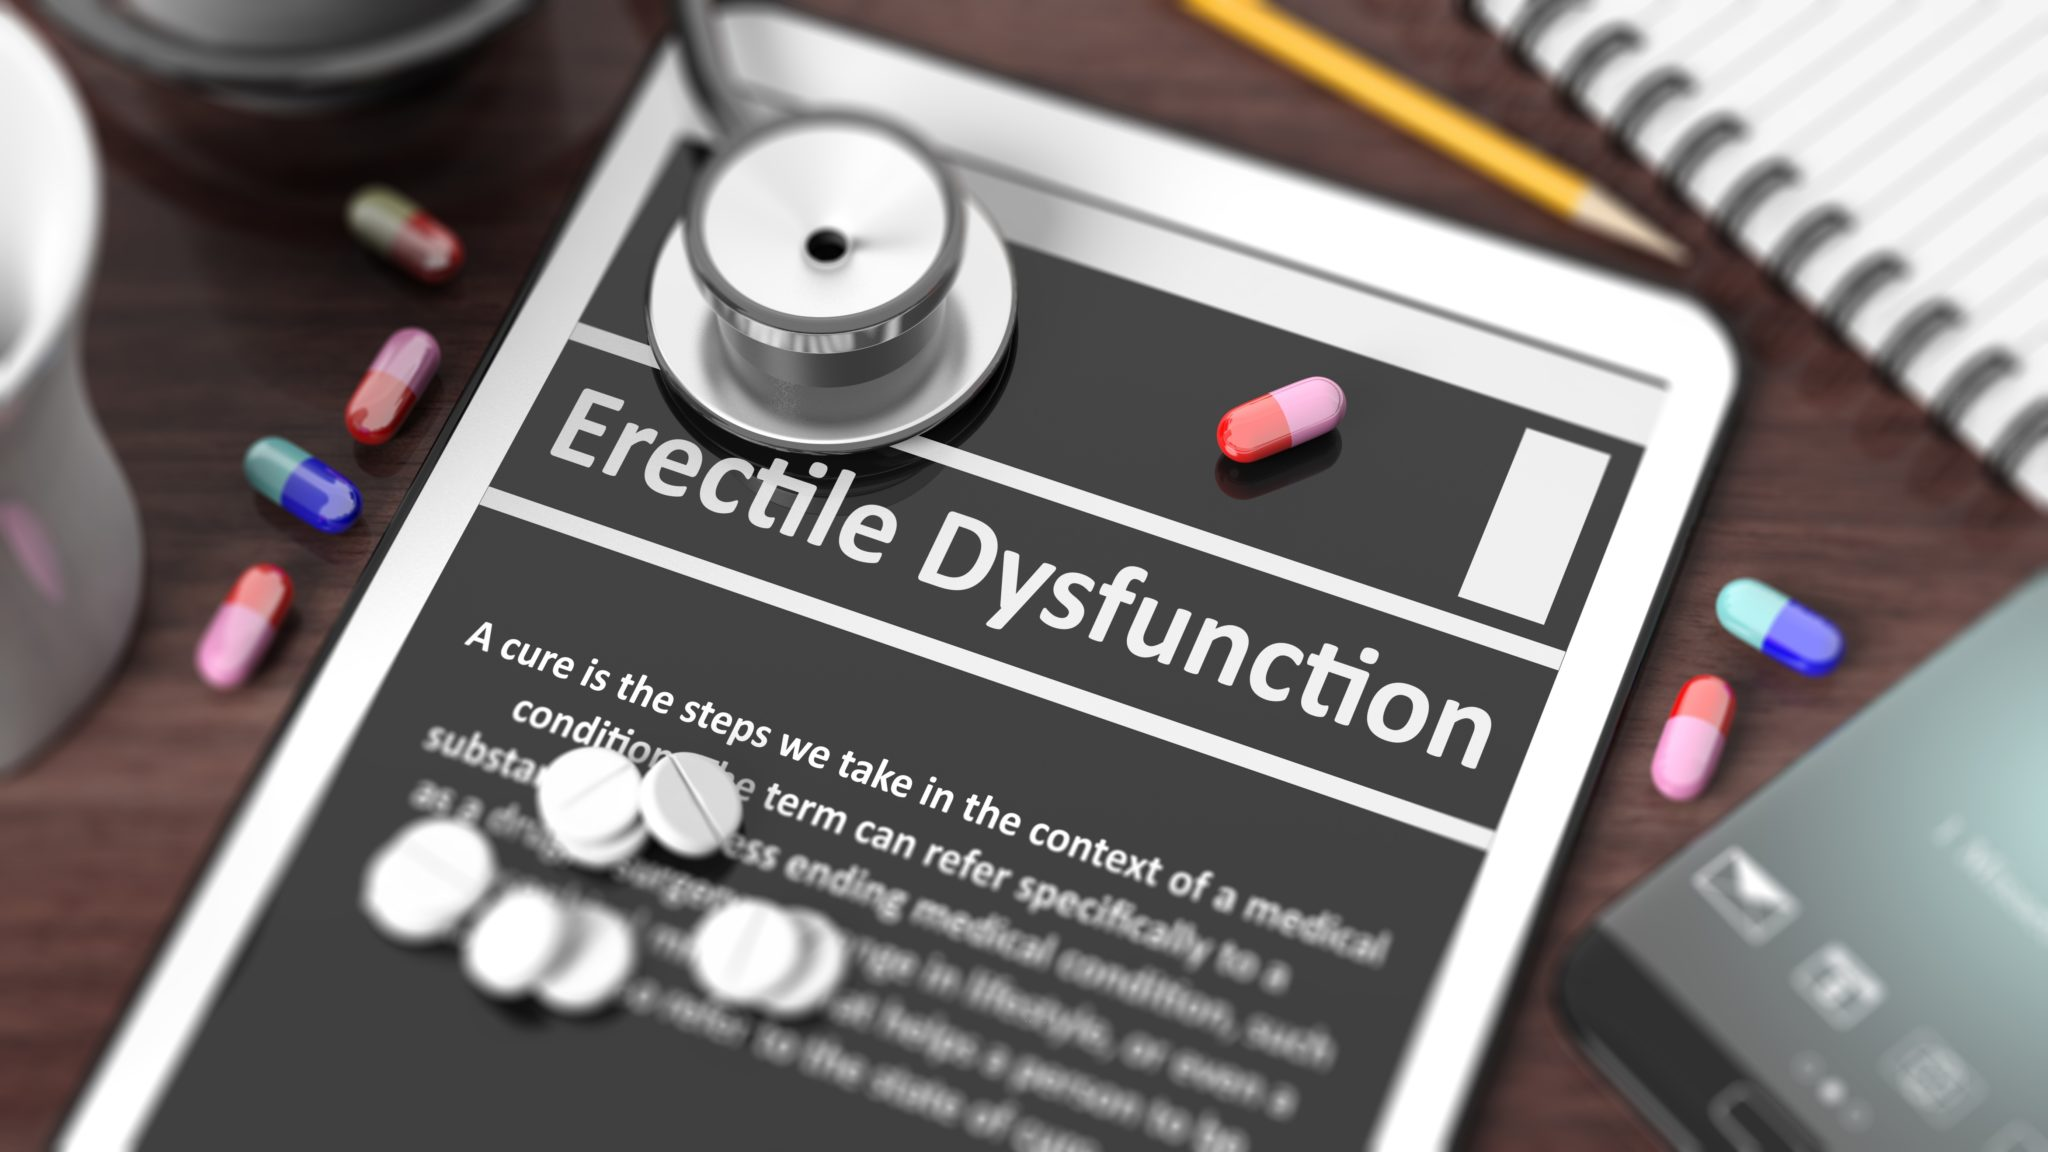 Erectile Dysfunction, Erectile Dysfunction (ED) and Painkillers